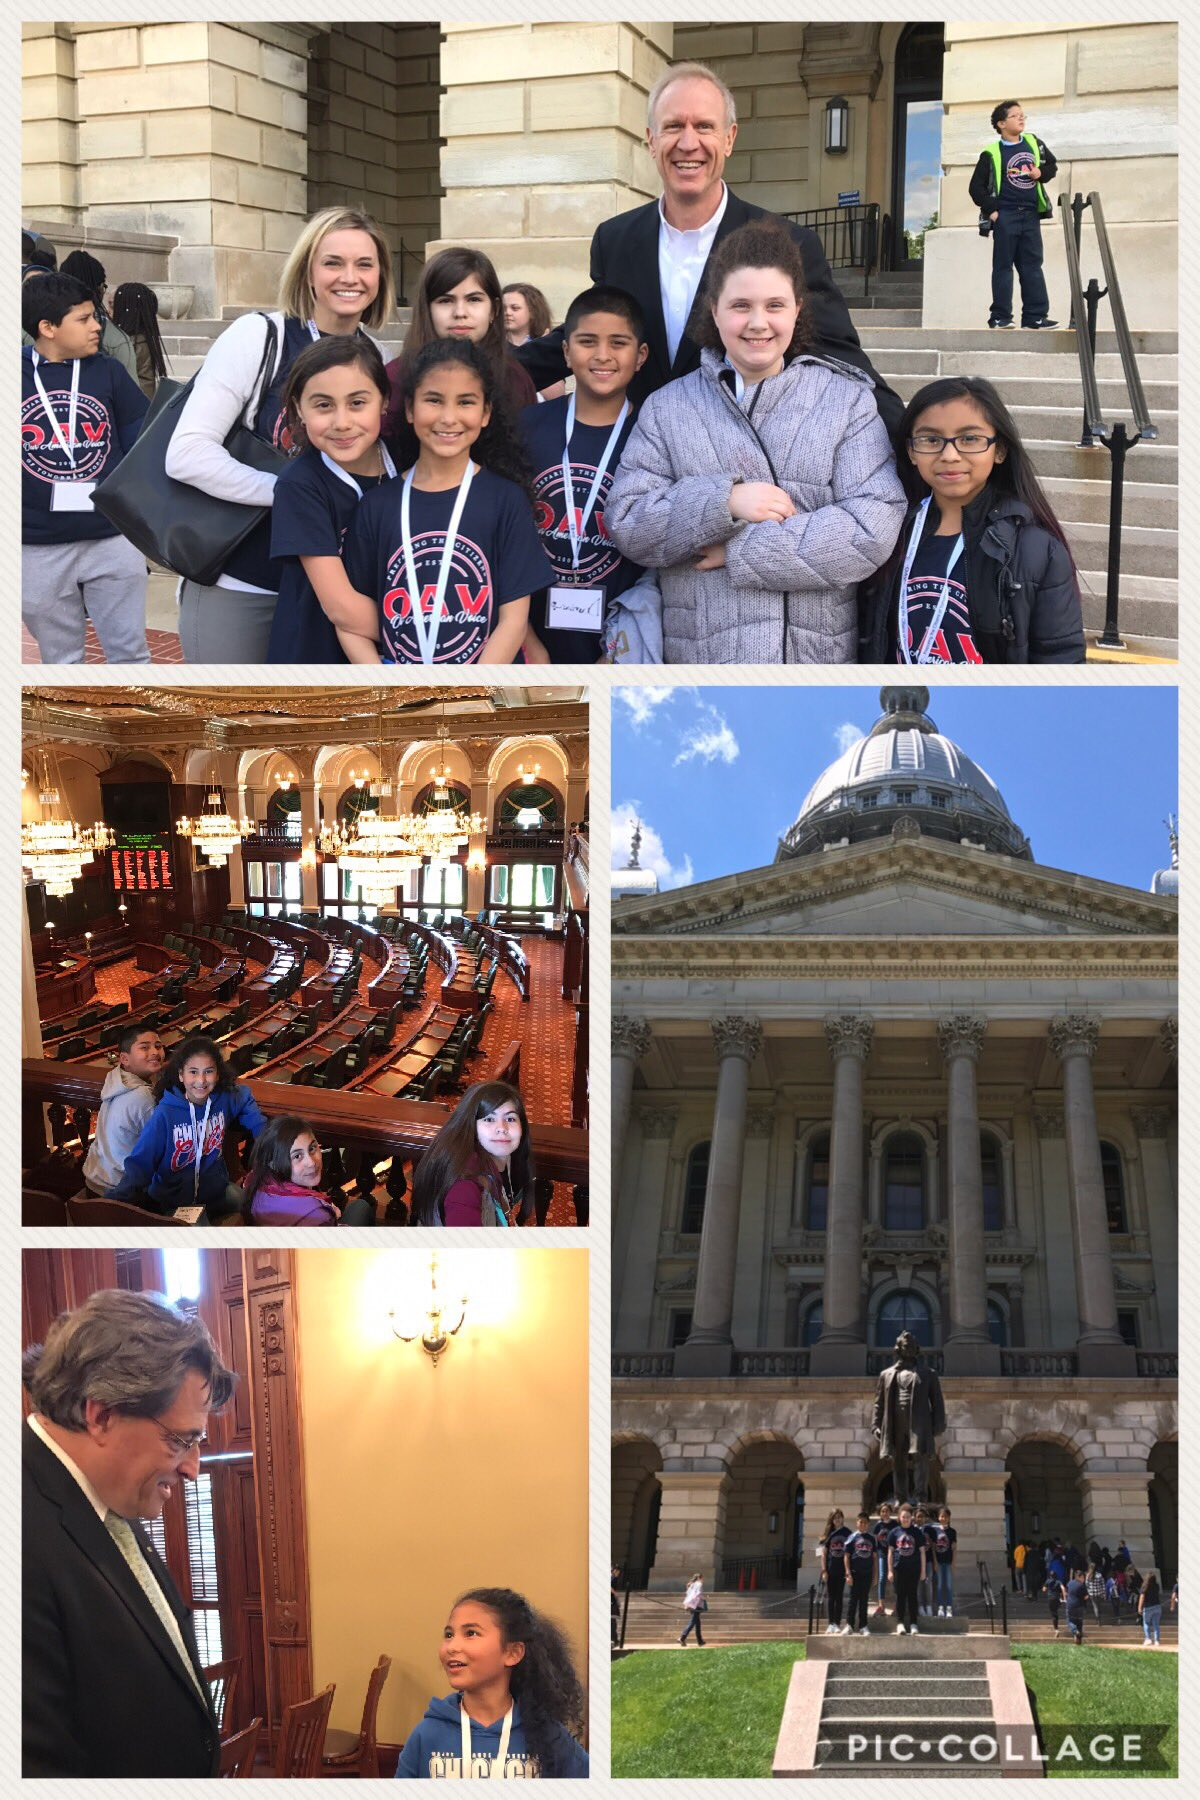 What a day in Springfield with #OAVsummit17!  Thanks @OurAmVoice for the amazing day learning about government!  #hiawathapride https://t.co/dEZDurUiAG